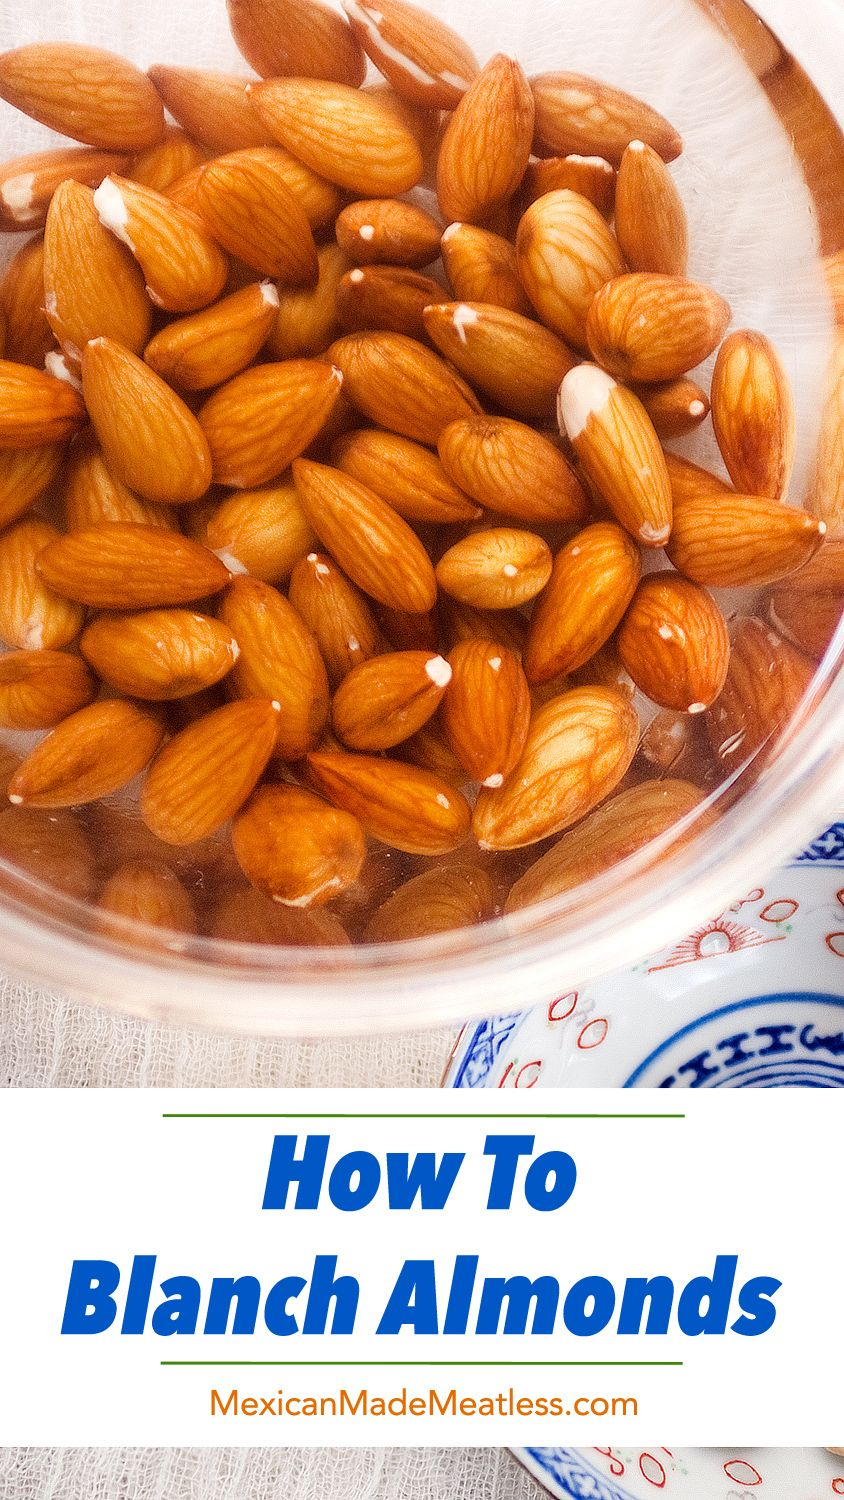 Do You Know How to Blanch Almonds? #dairyfree #almonds #howtoblanch